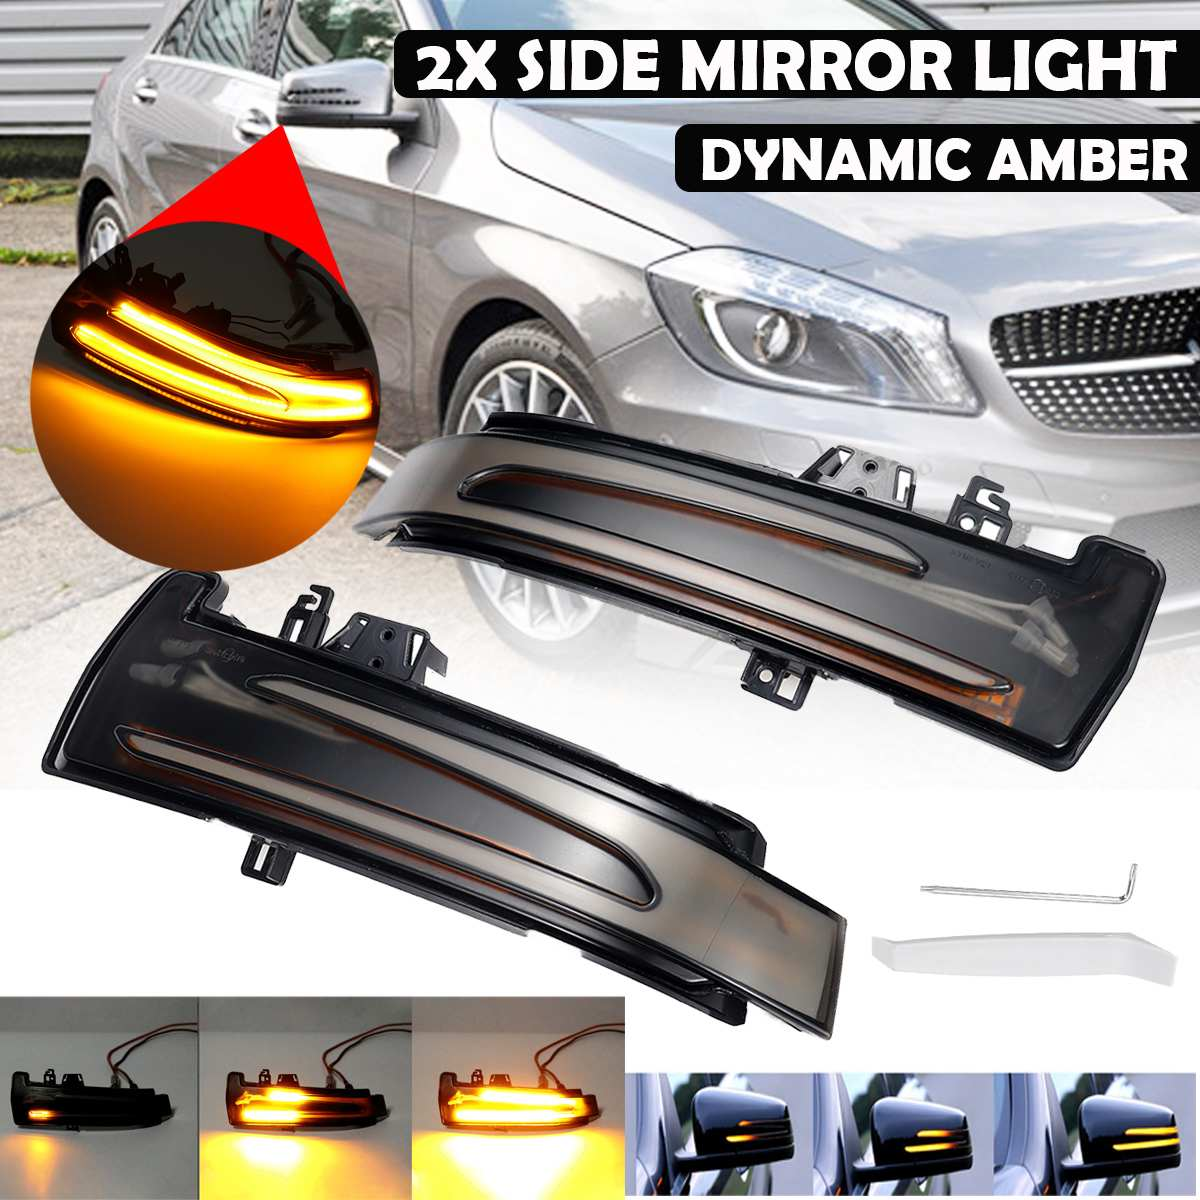 Mirror Turn Signal Light Lens Fits For Mercedes W204 W212 W221 C250 Right Side